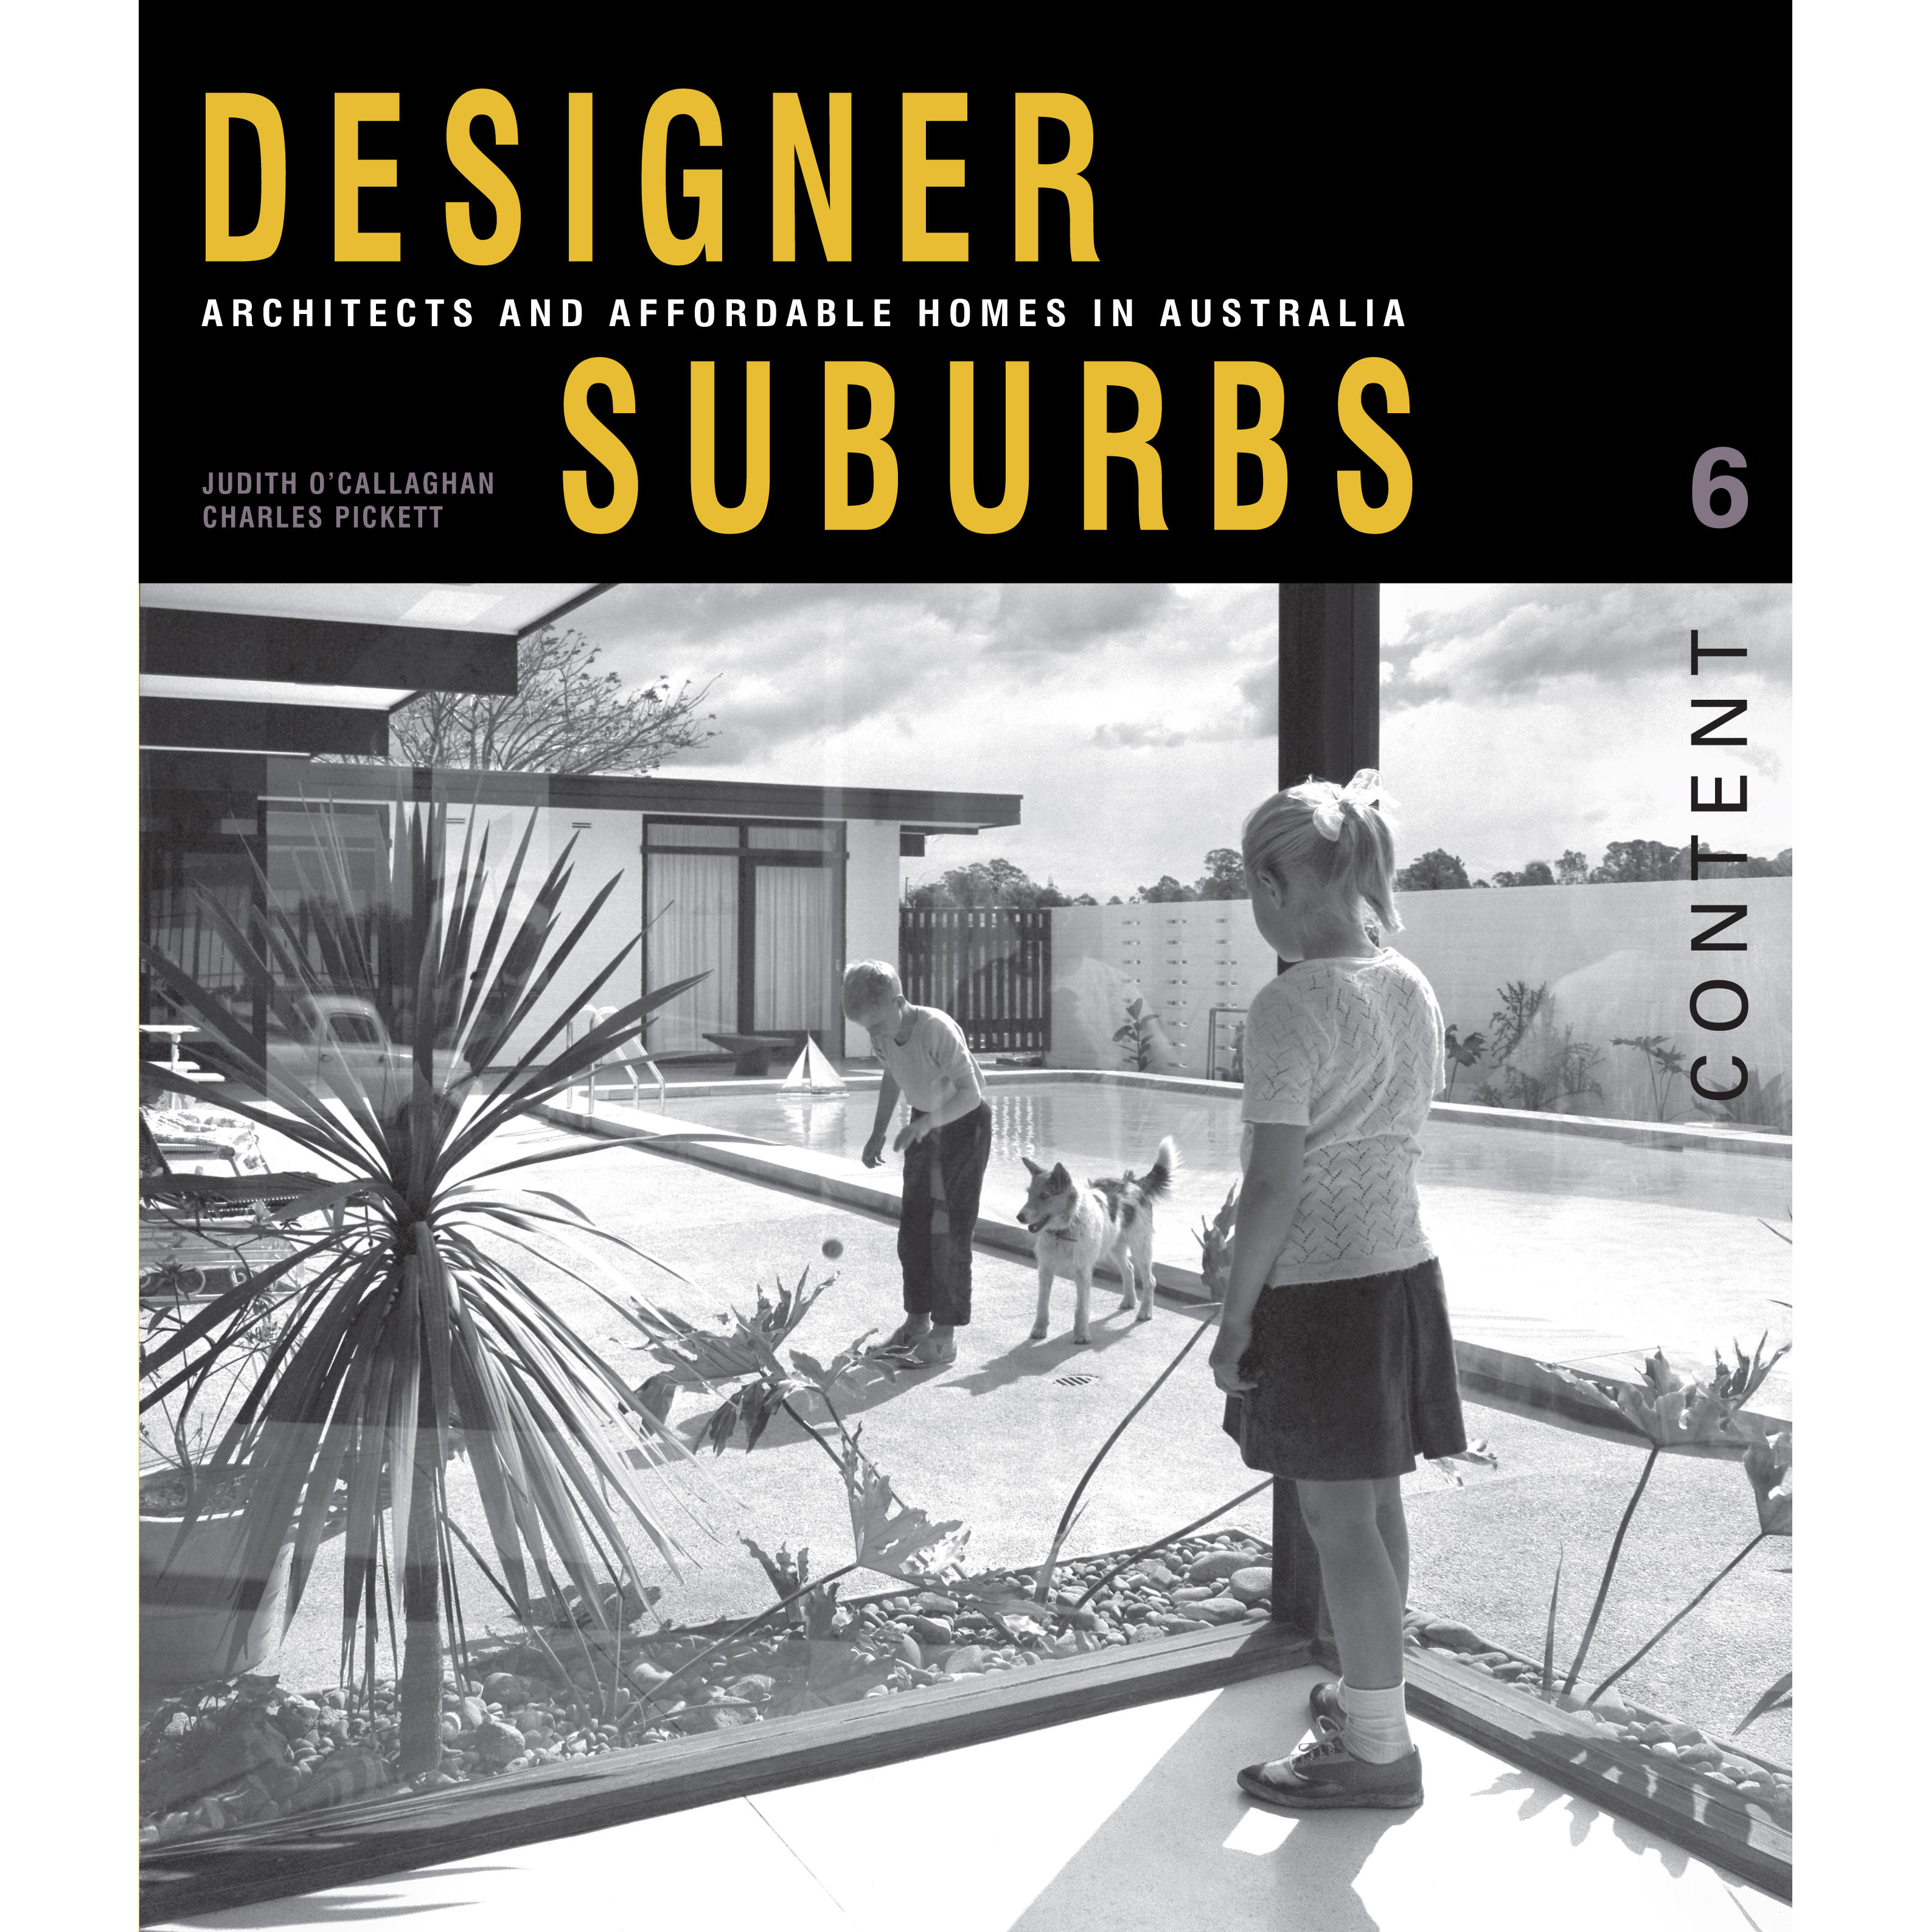 Book Cover Design Australia : Designer suburbs architects and affordable homes in